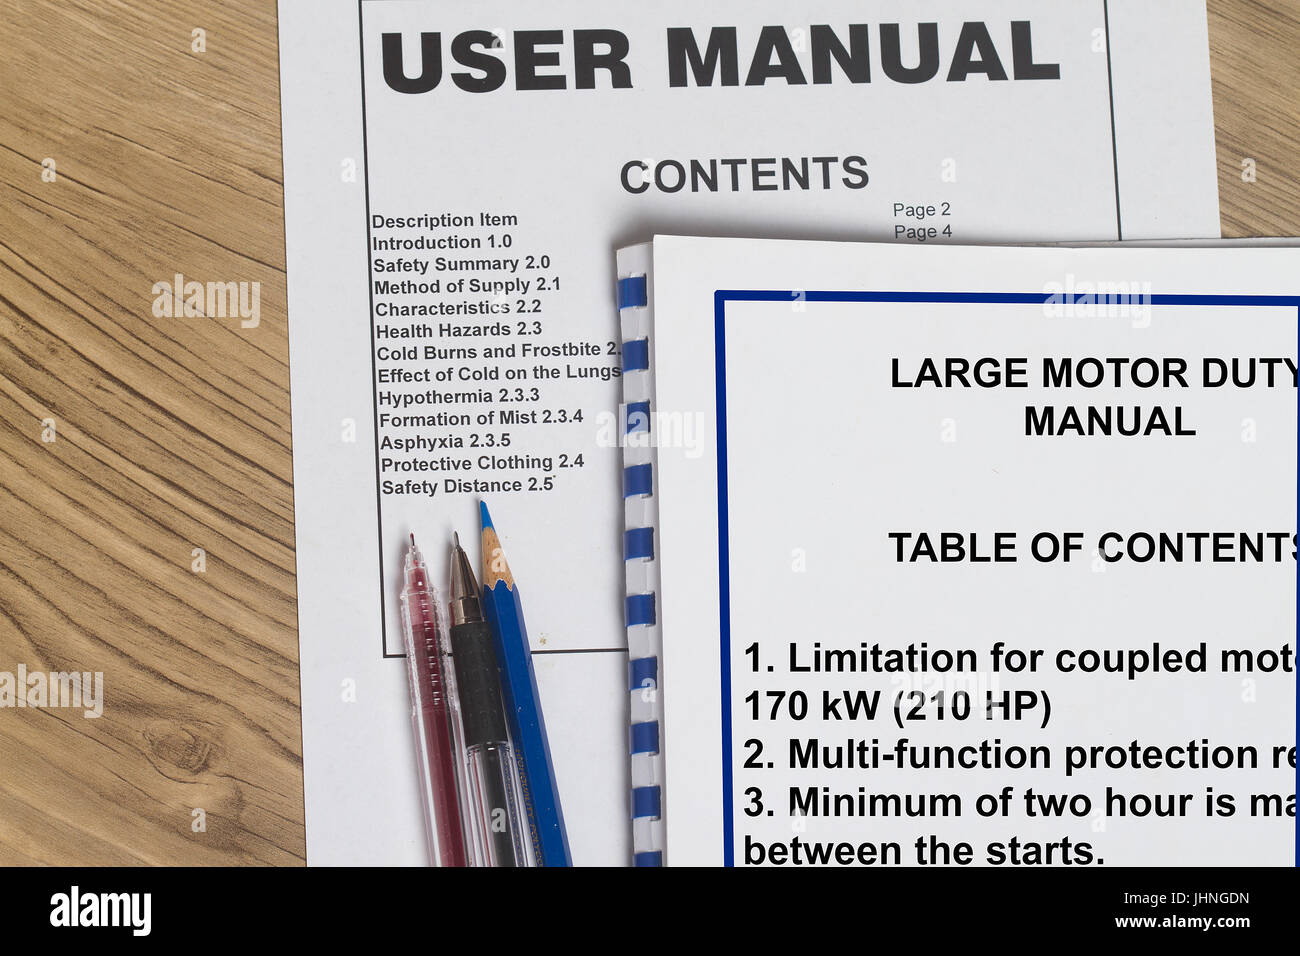 Instruction manual many uses in the oil and gas industry stock.